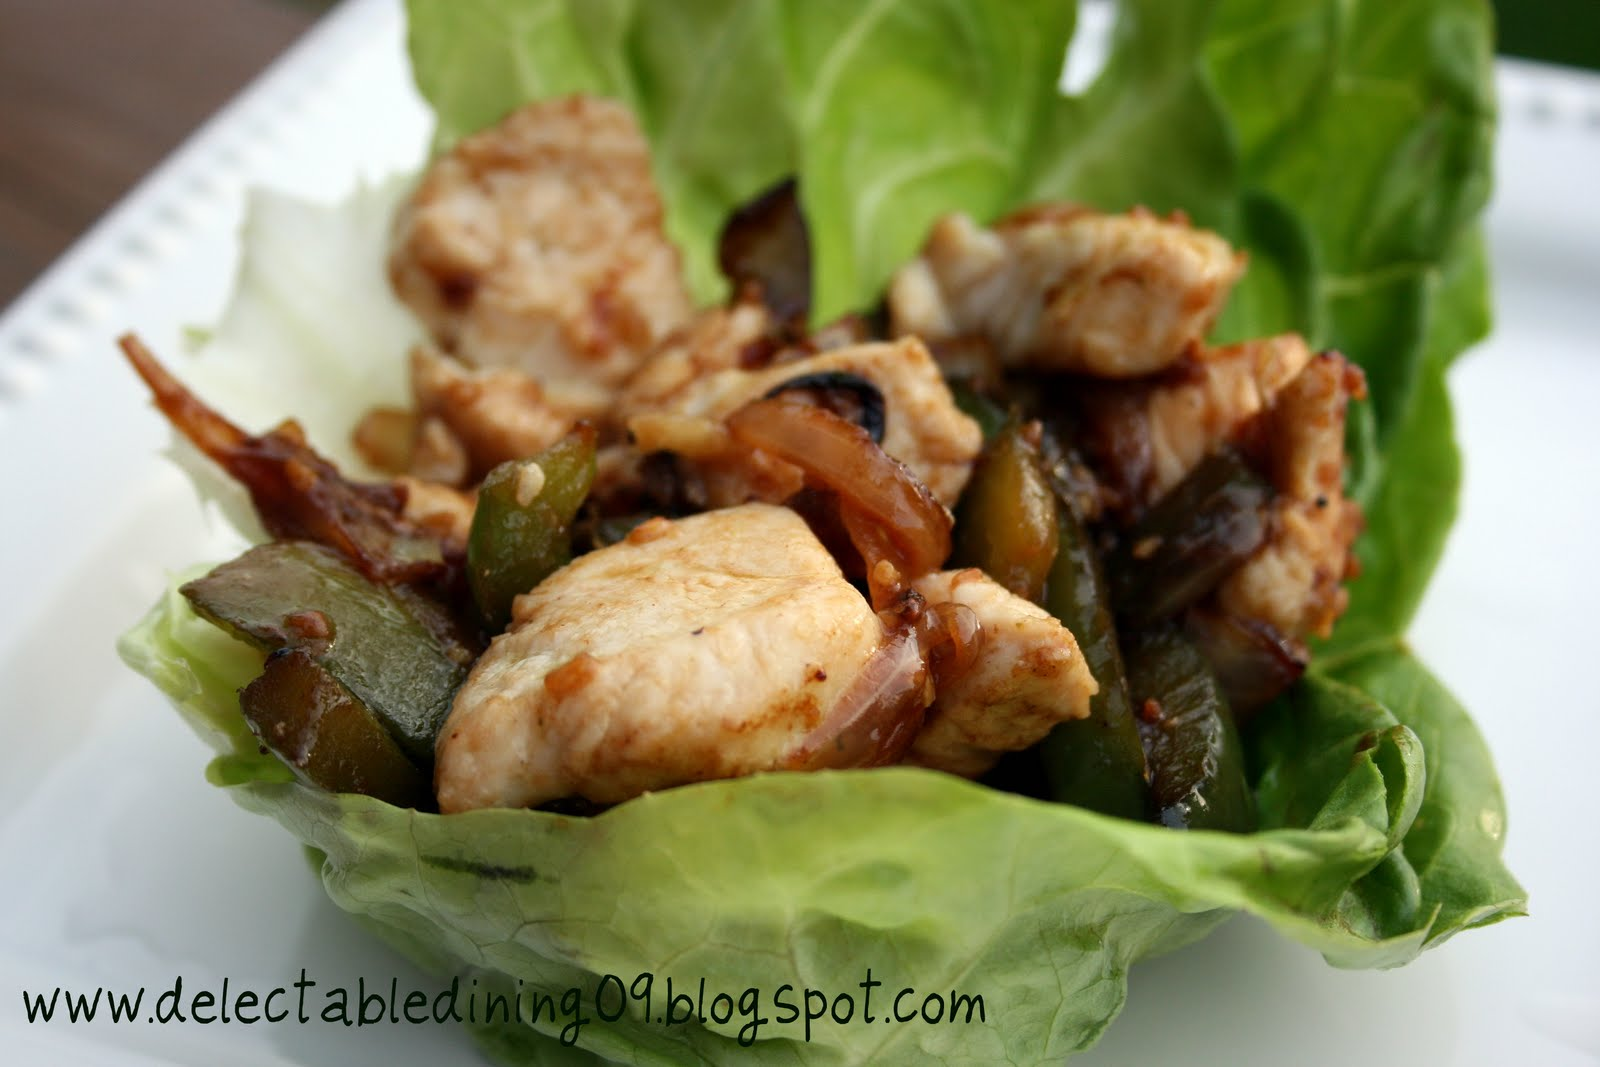 Delectable Dining: Chicken Stir Fry Wraps